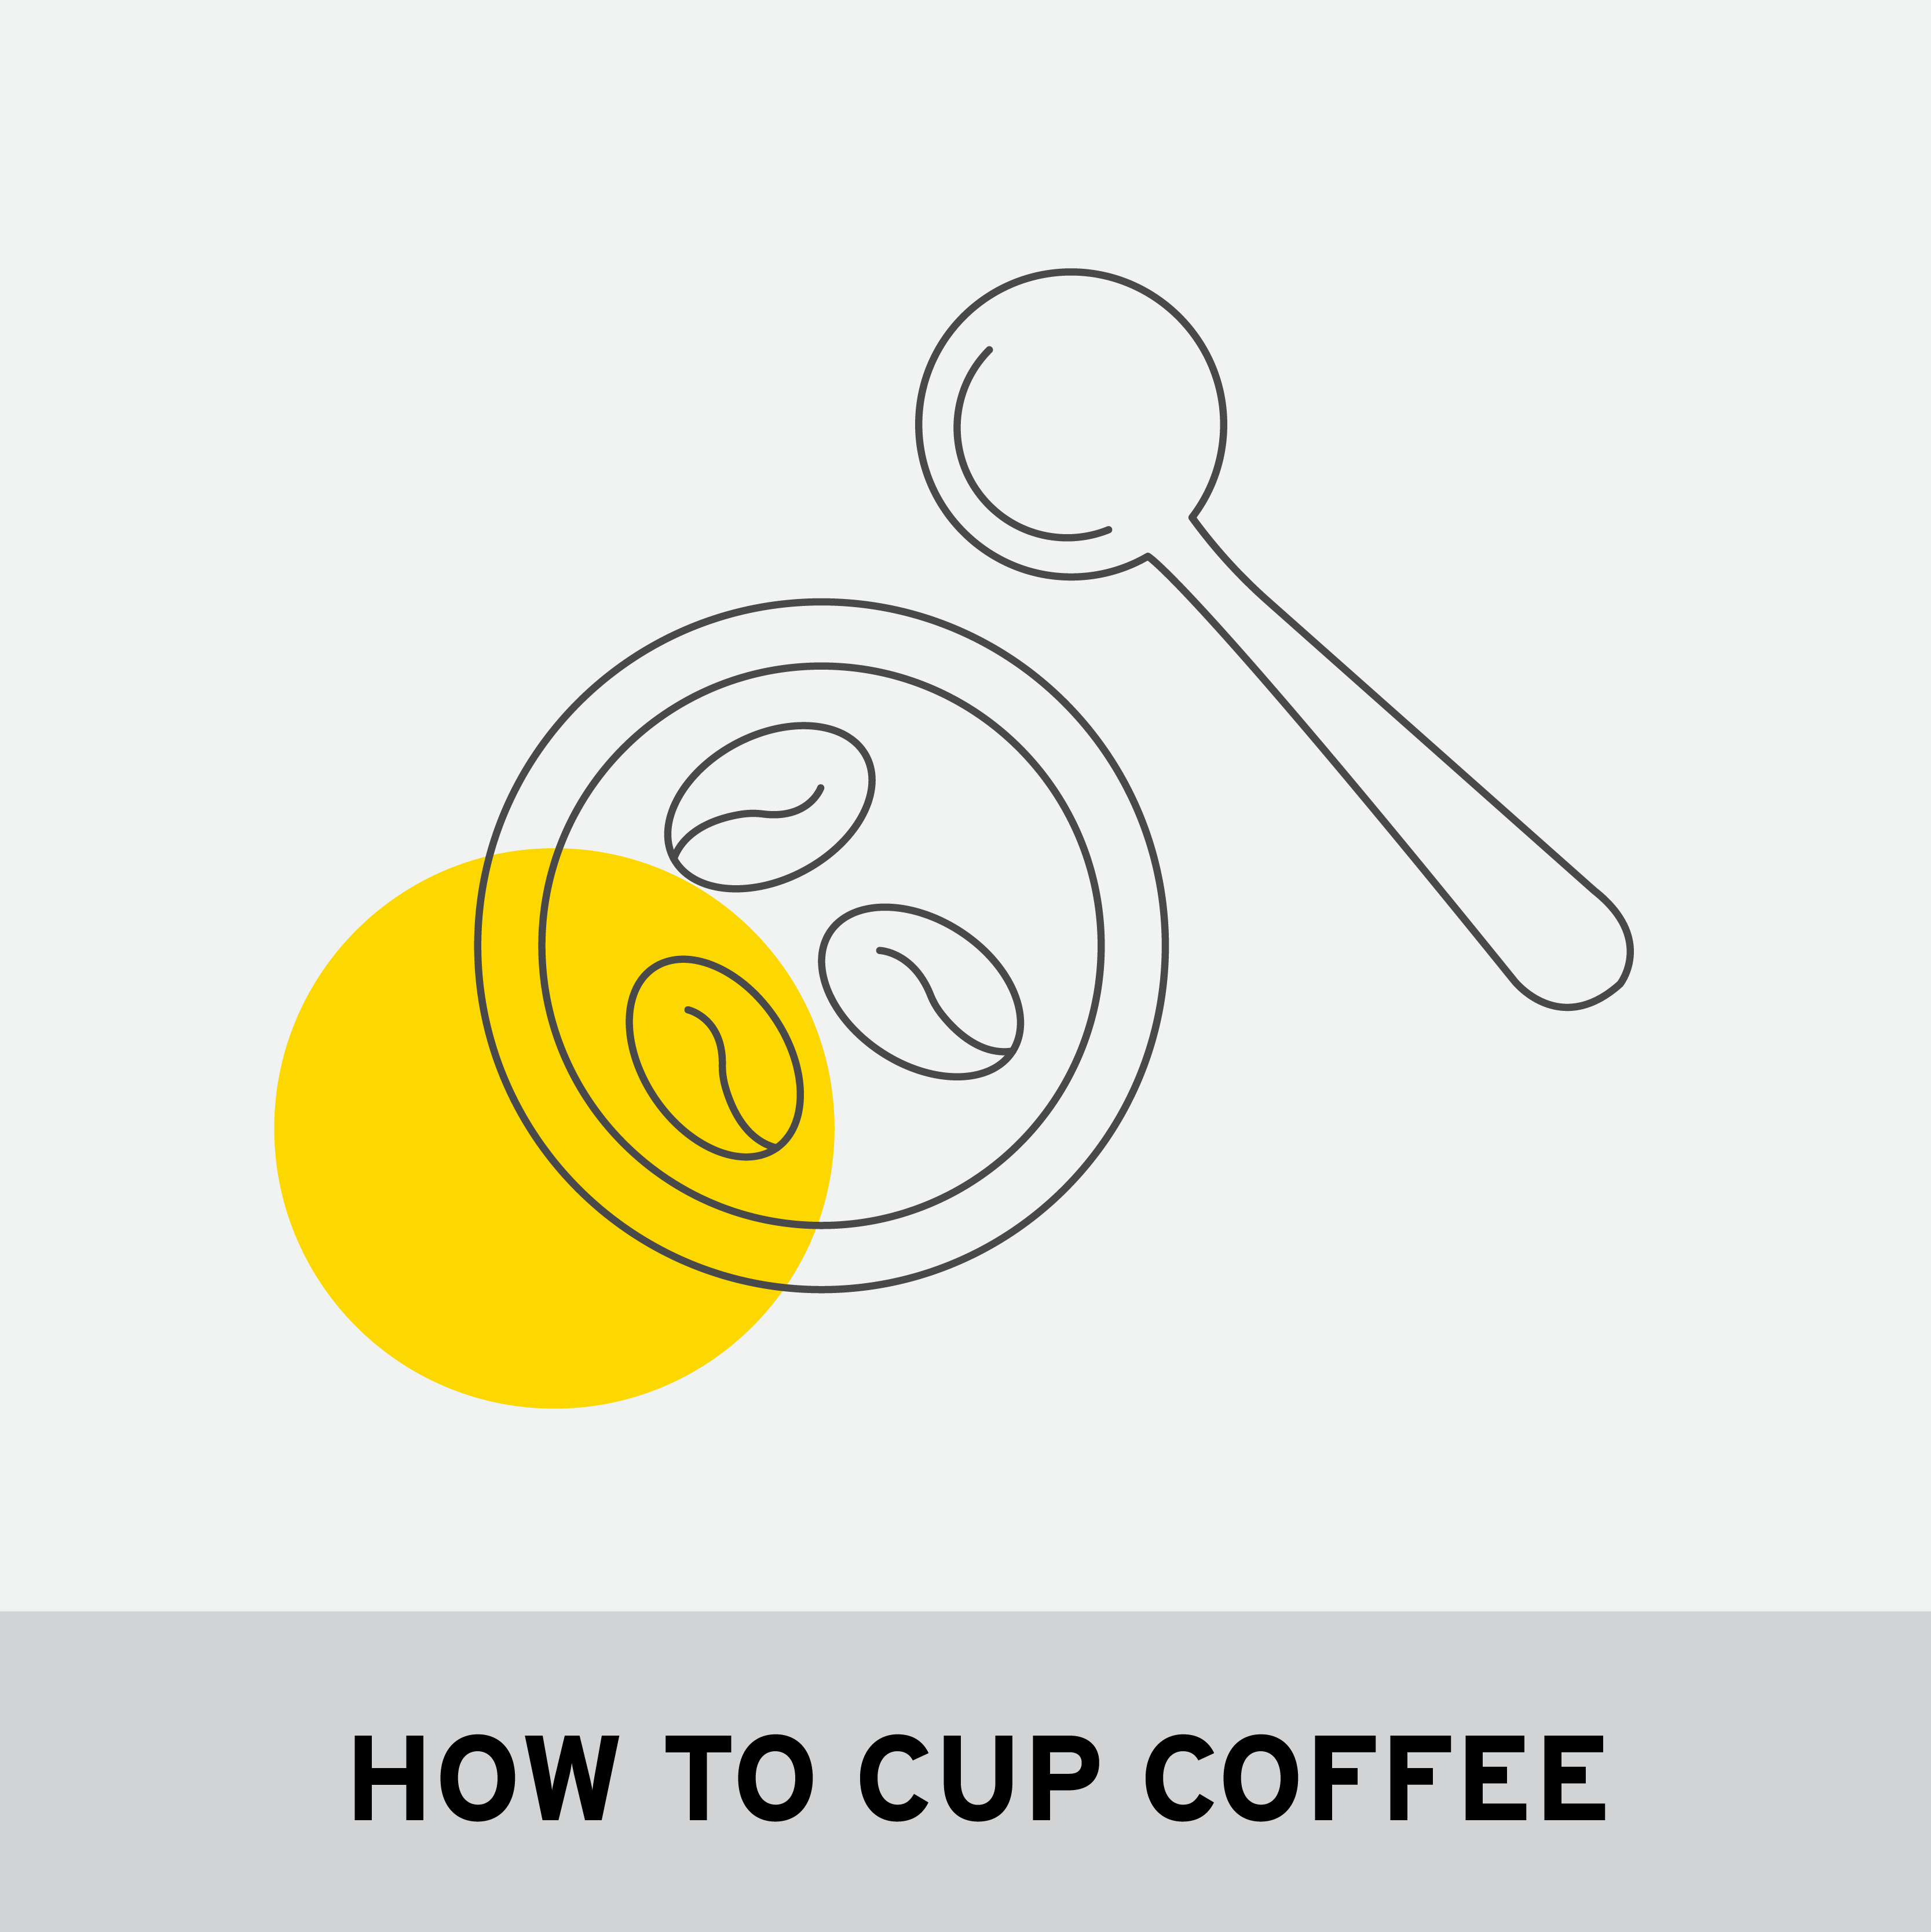 HOW TO CUP COFFEE